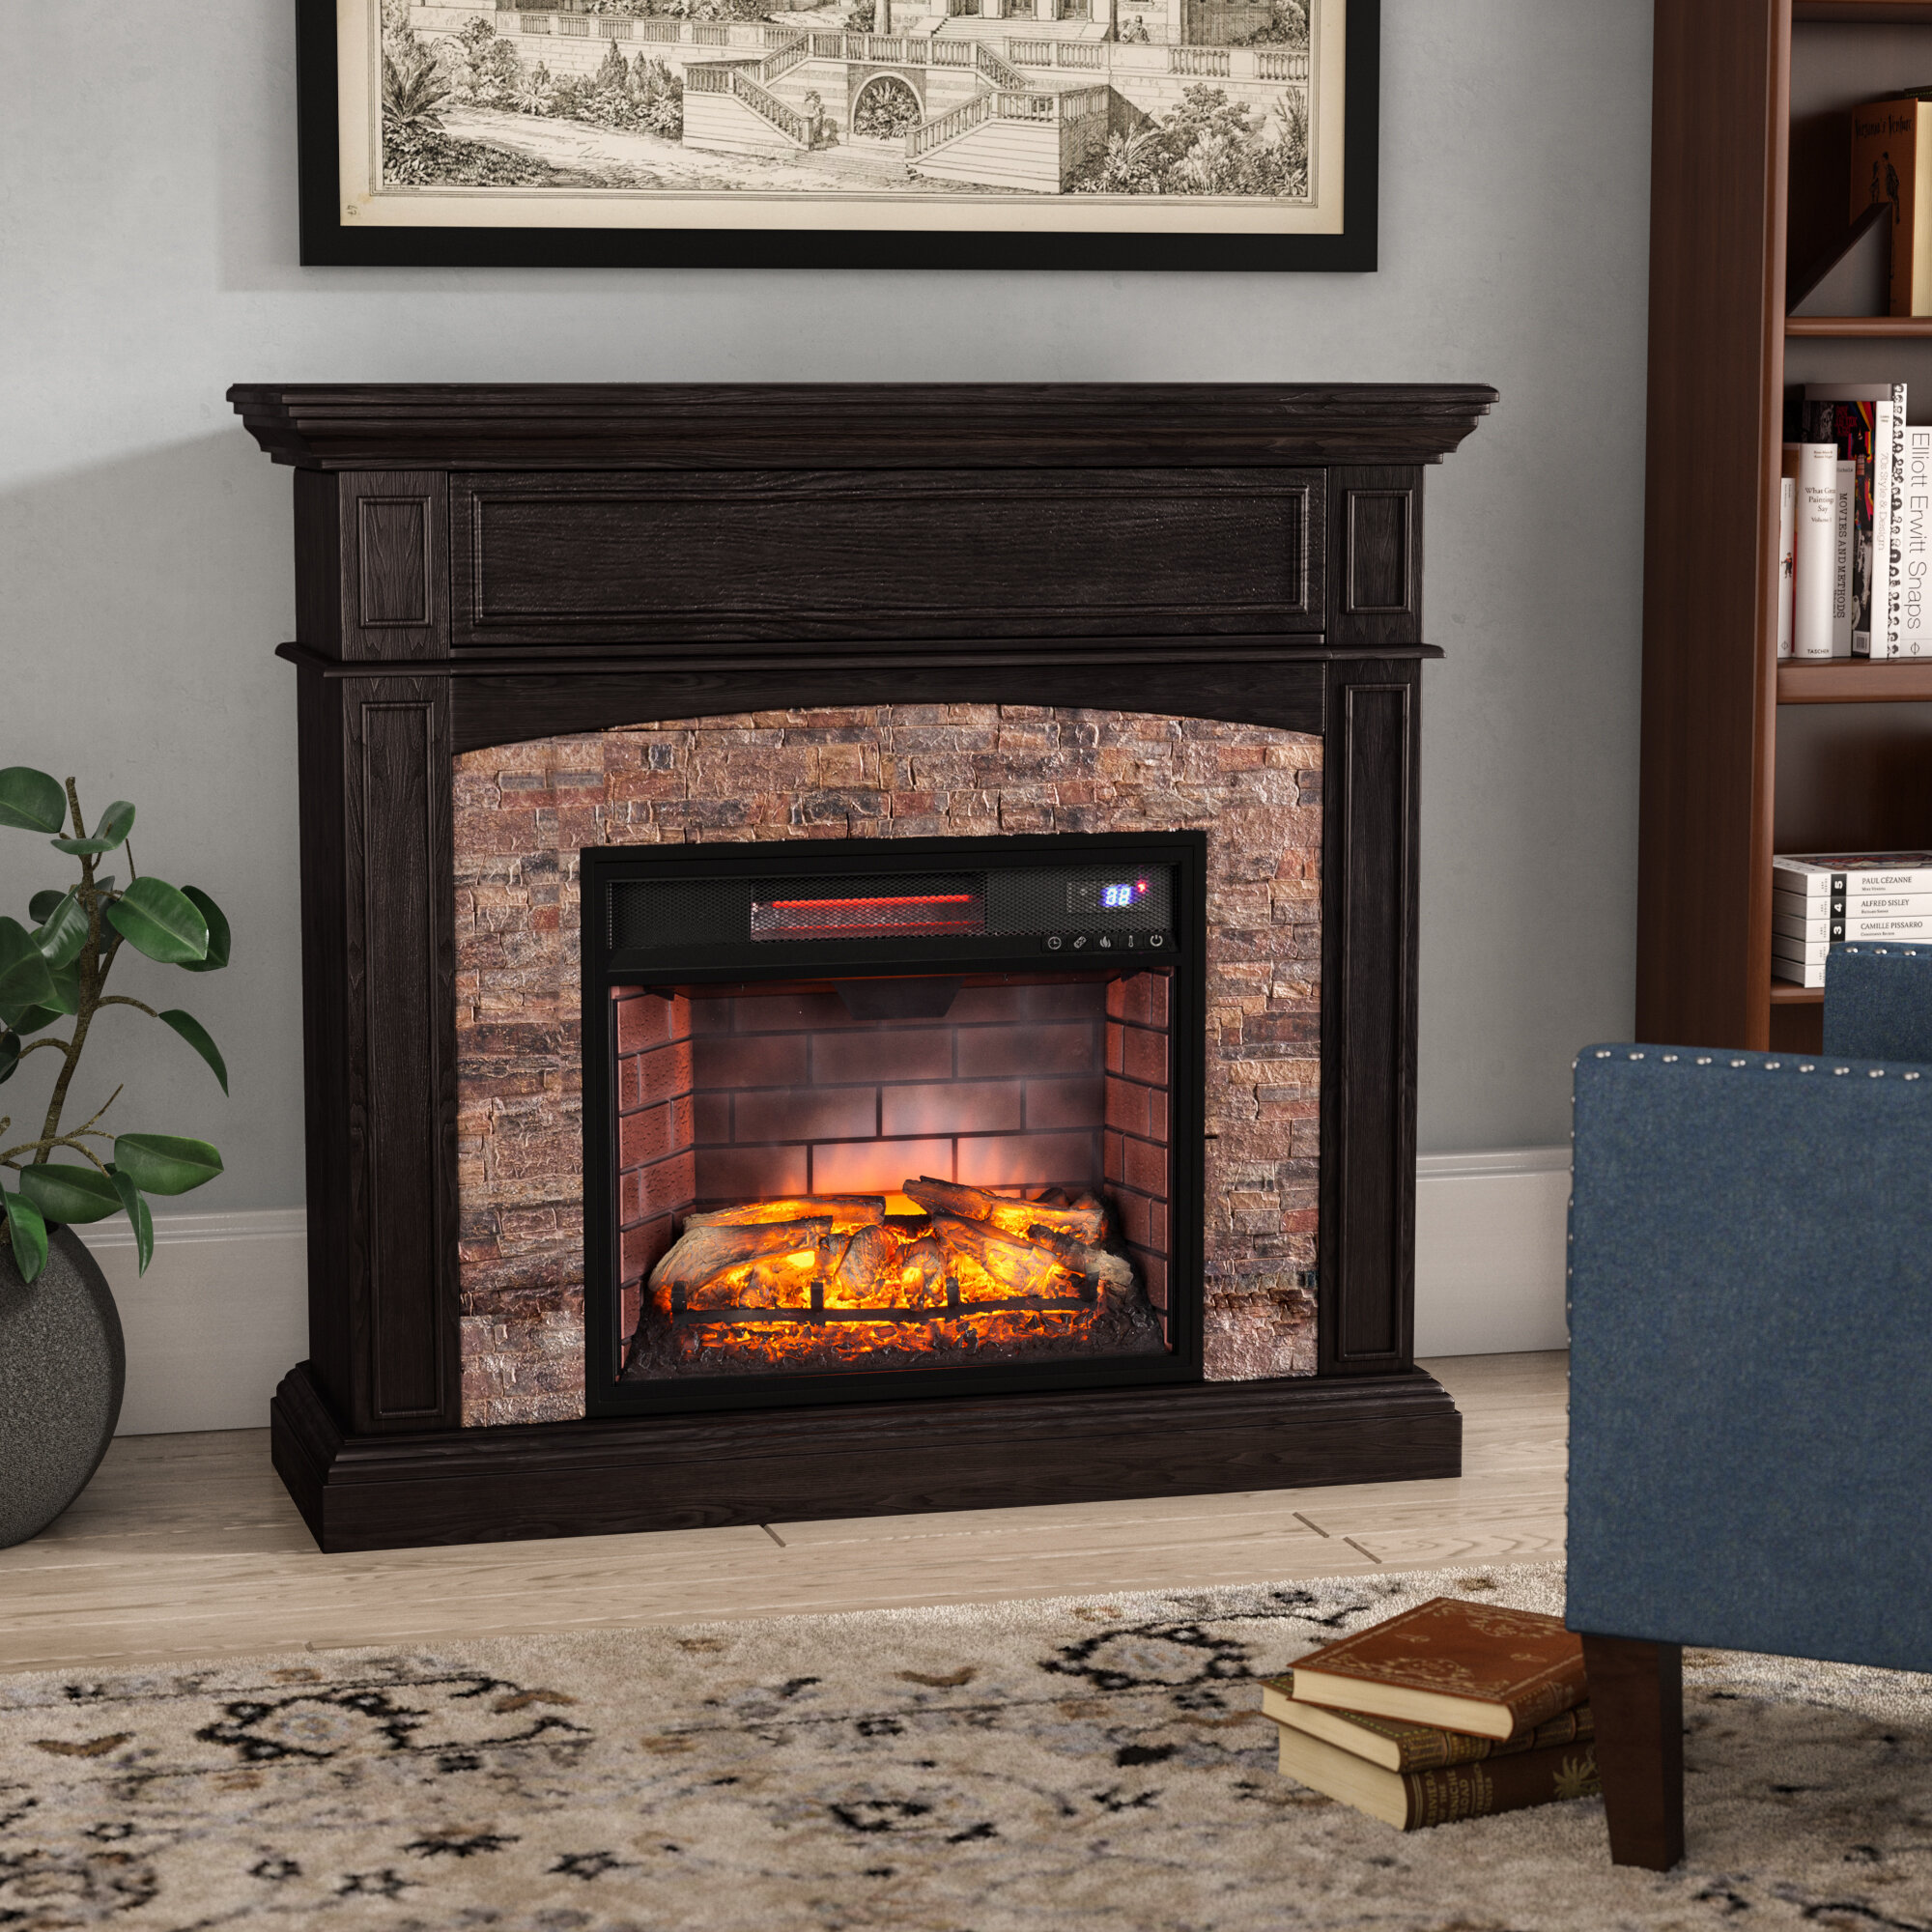 top fireplace each house for yields ideas value plug homes photos in percent increase home